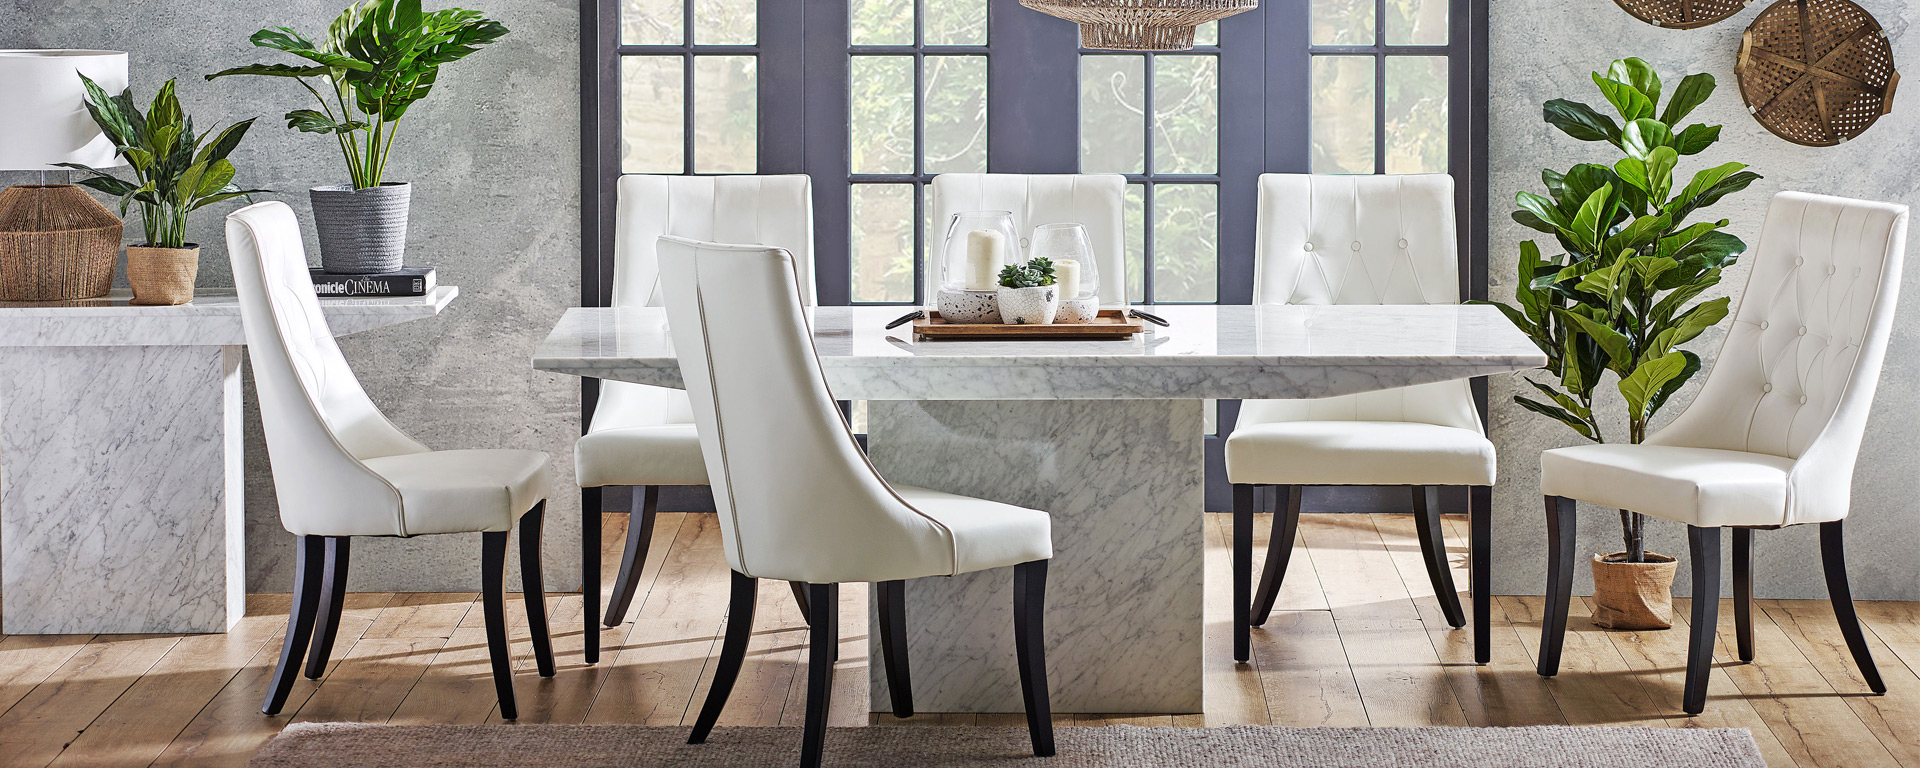 Dining Room Goals 5 Trending Concrete And Stone Dining Looks Harvey Norman Australia